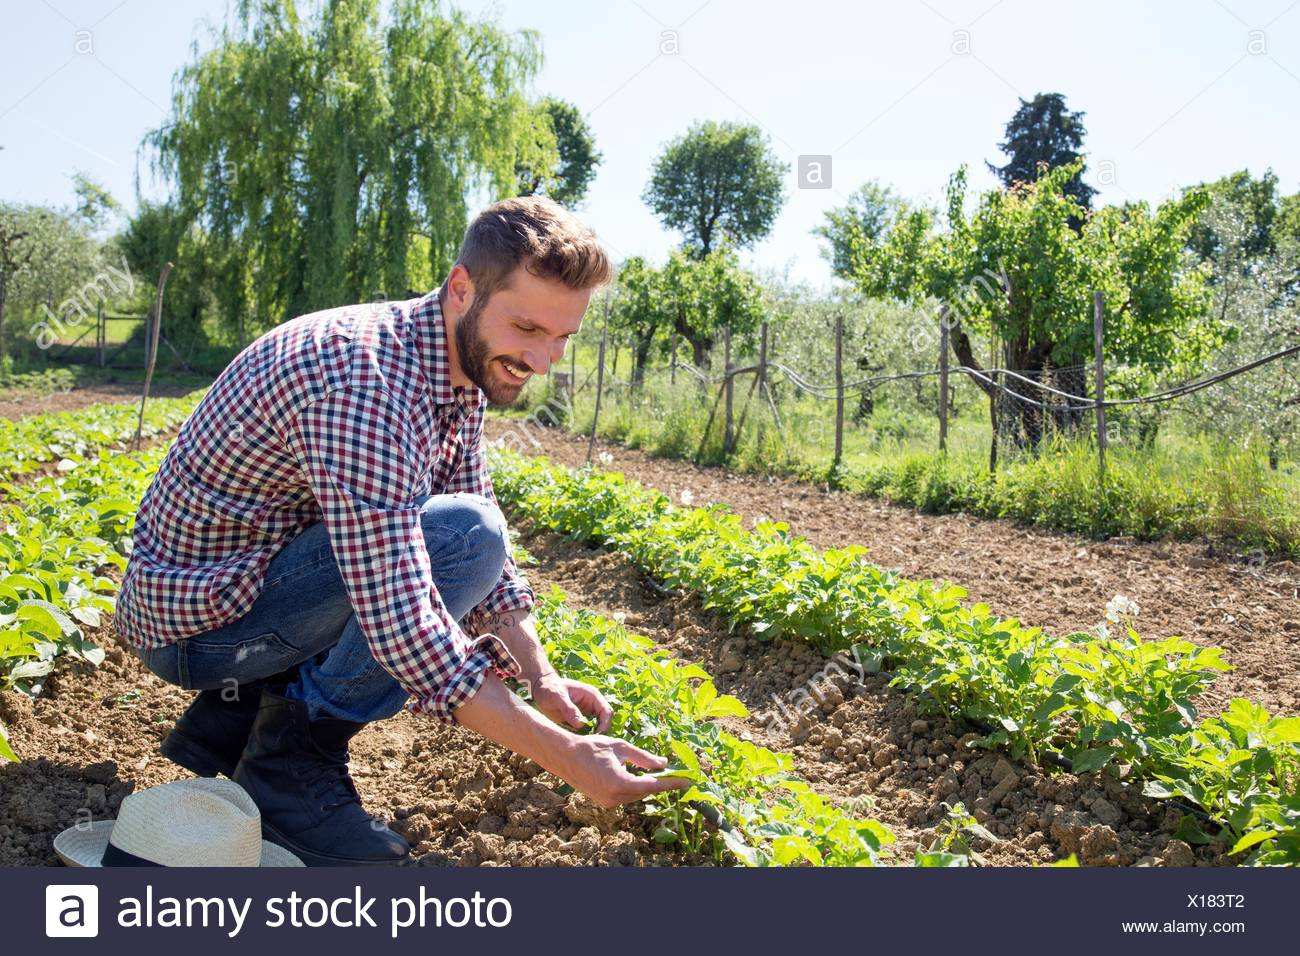 Young man crouched in field tending to tomato plants Stock Photo